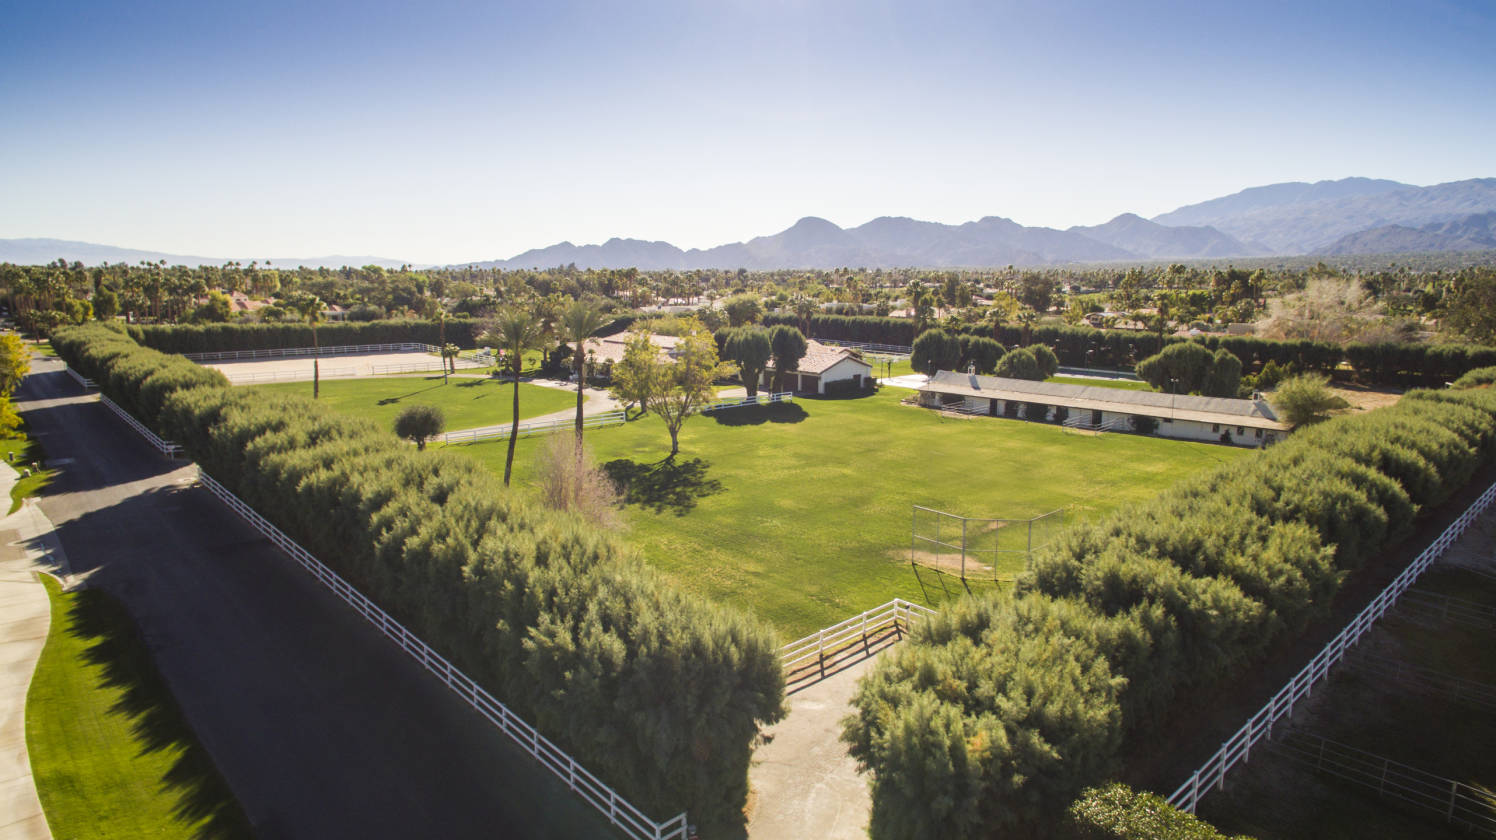 7 acre gentleman 39 s ranch rancho mirage riverside county for 10000 square feet to acres